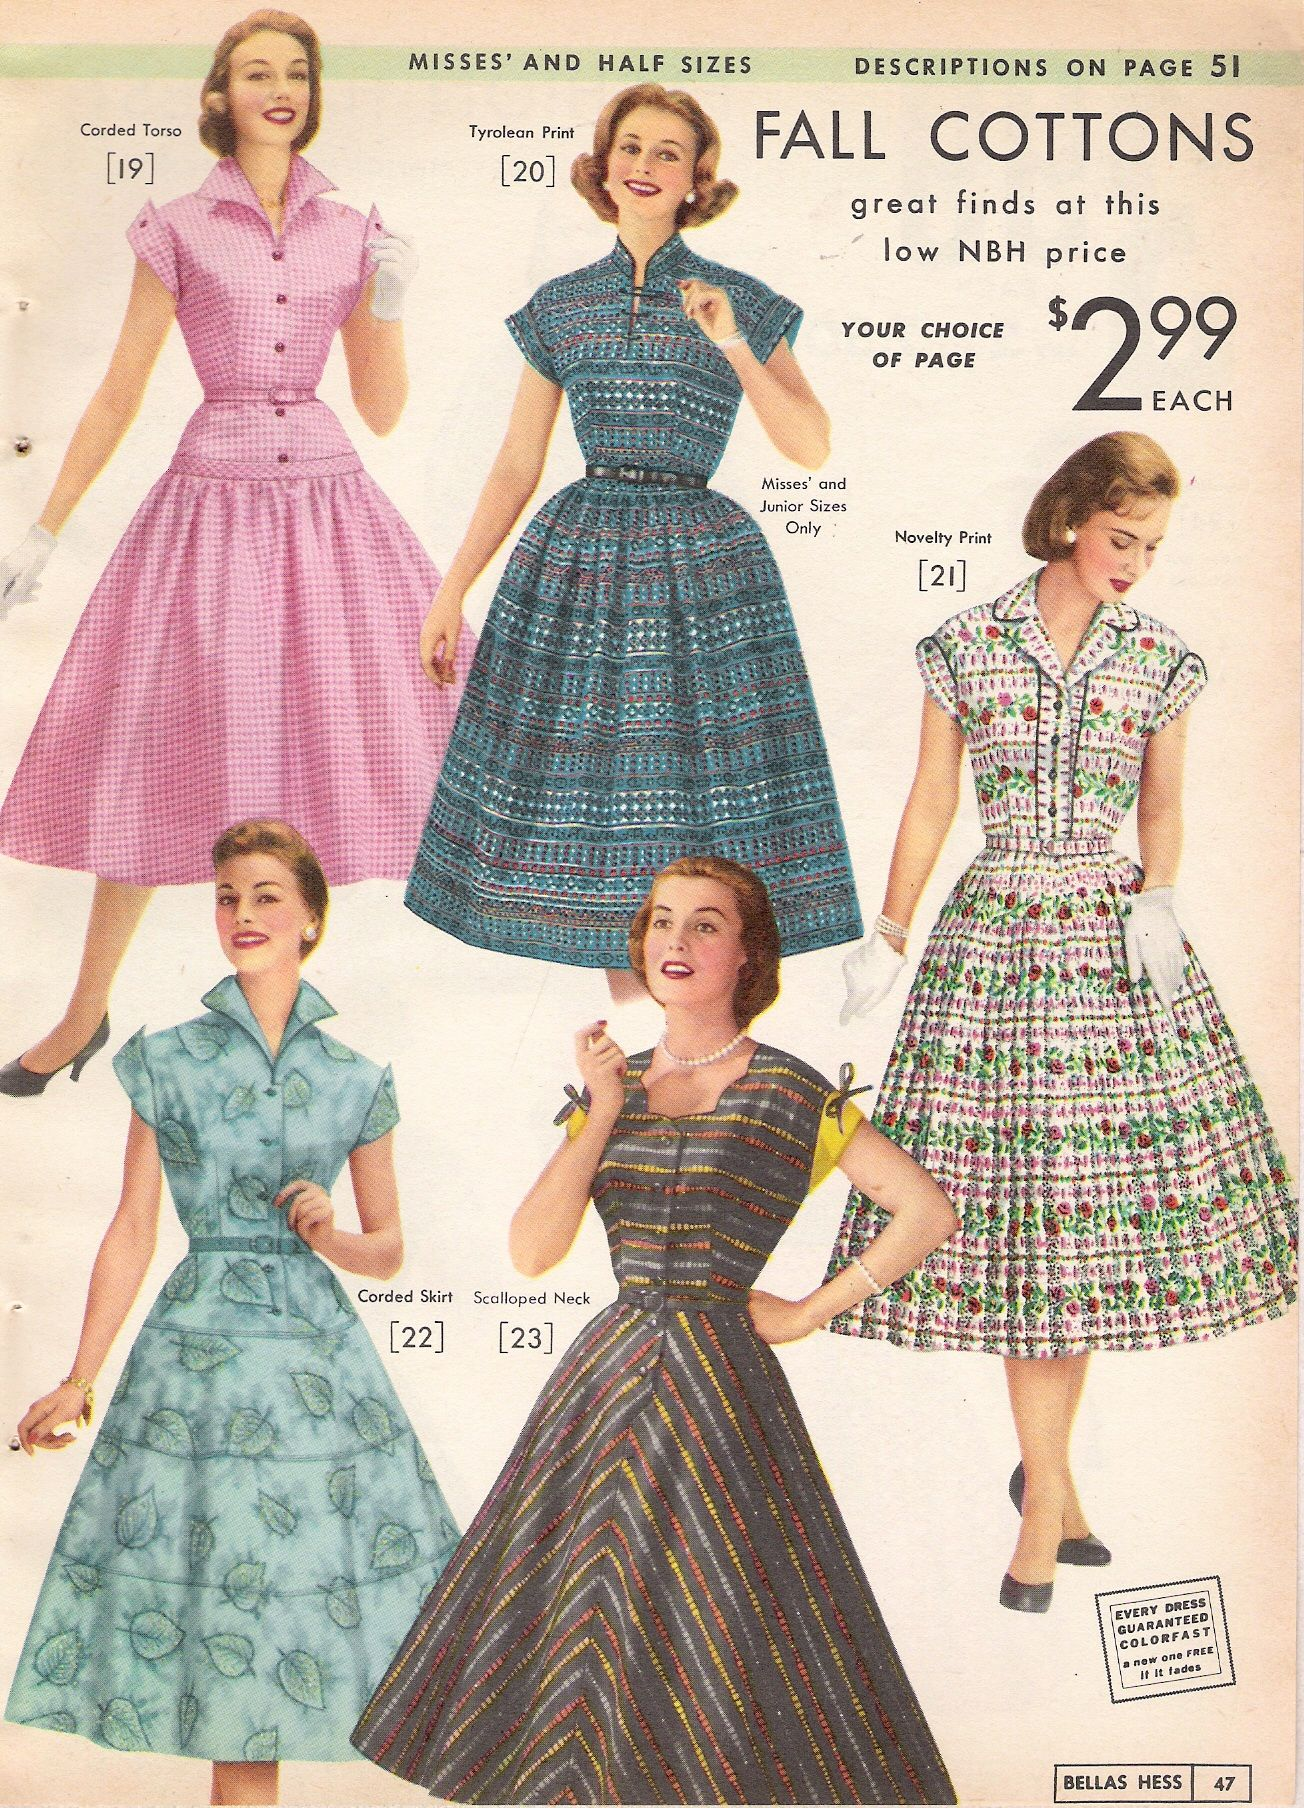 1950s House Dresses And Aprons History Vintage 1950s Dresses Vintage Fashion 1950s Vintage Outfits